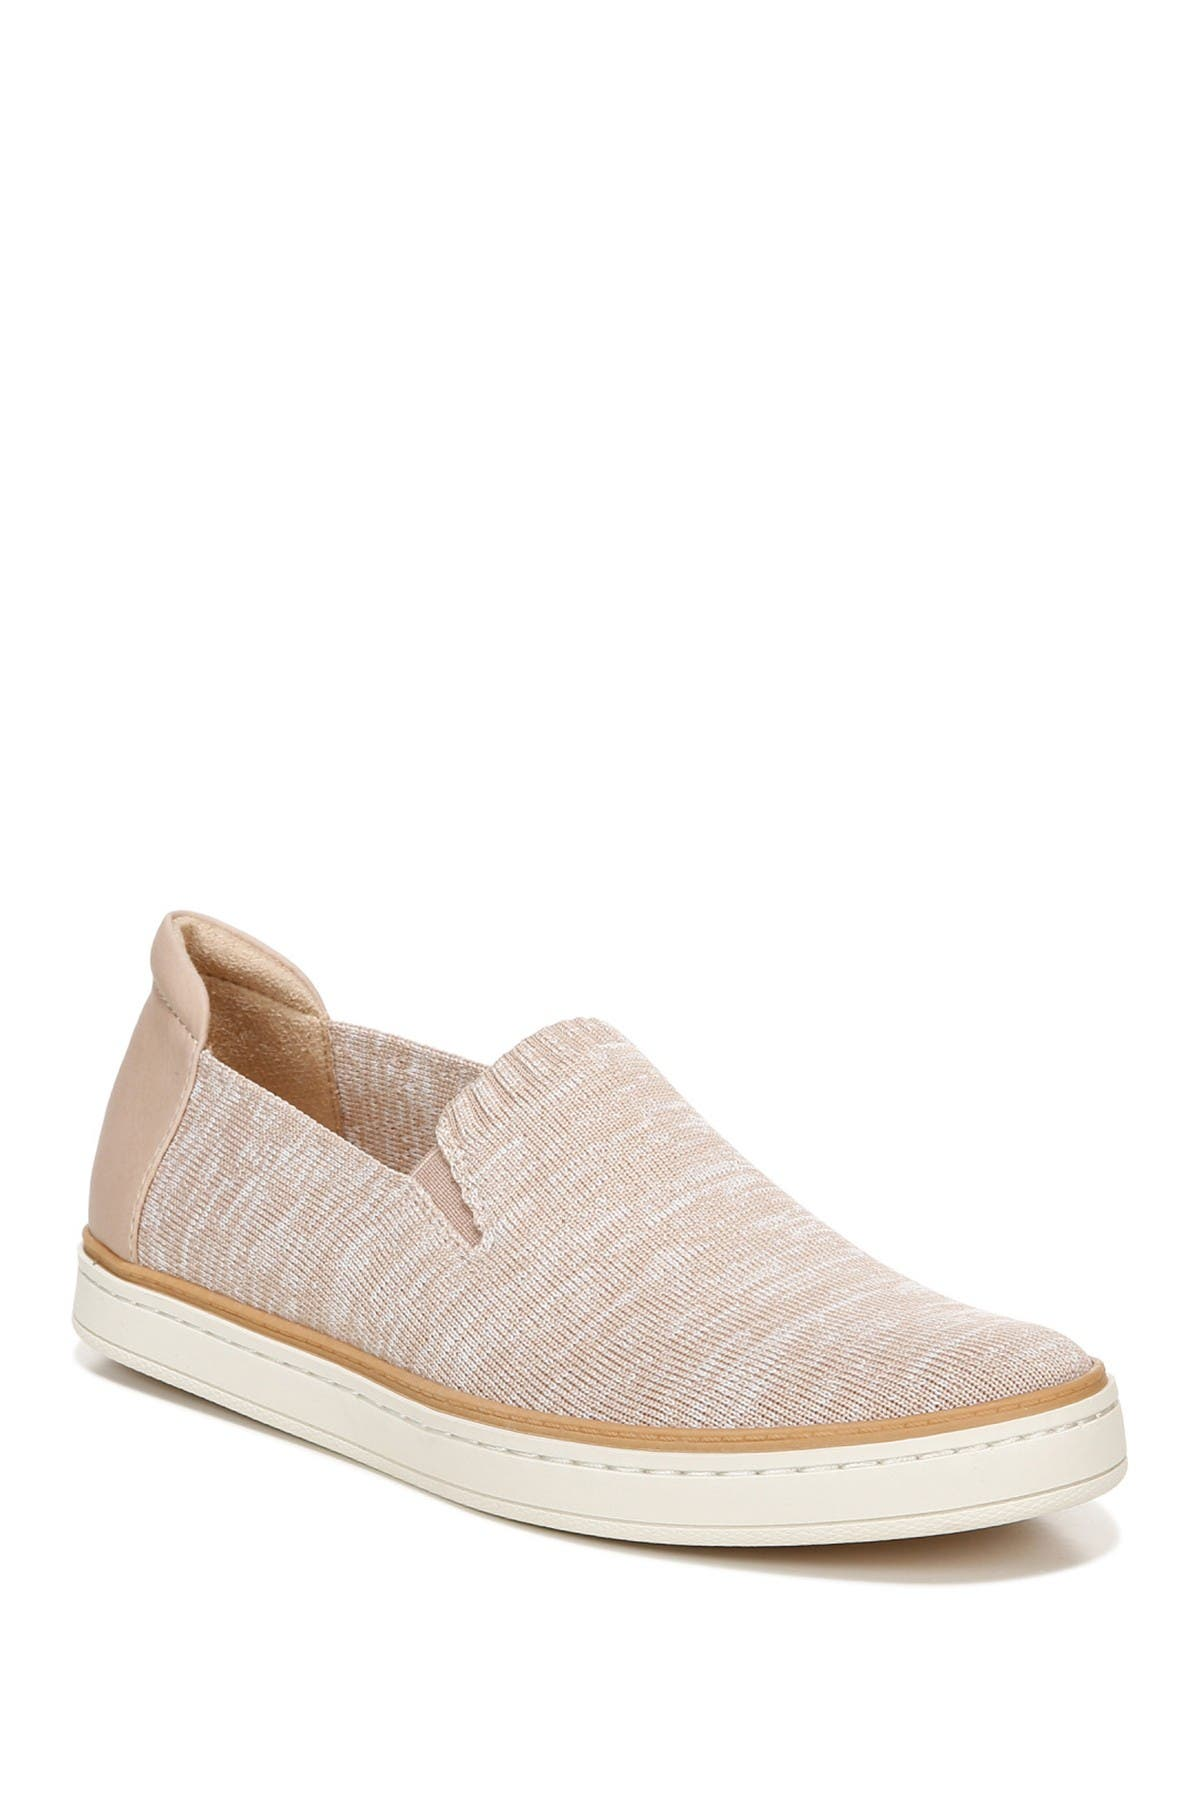 Image of SOUL Naturalizer Kemper 3 Slip-On Sneaker - Wide Width Available